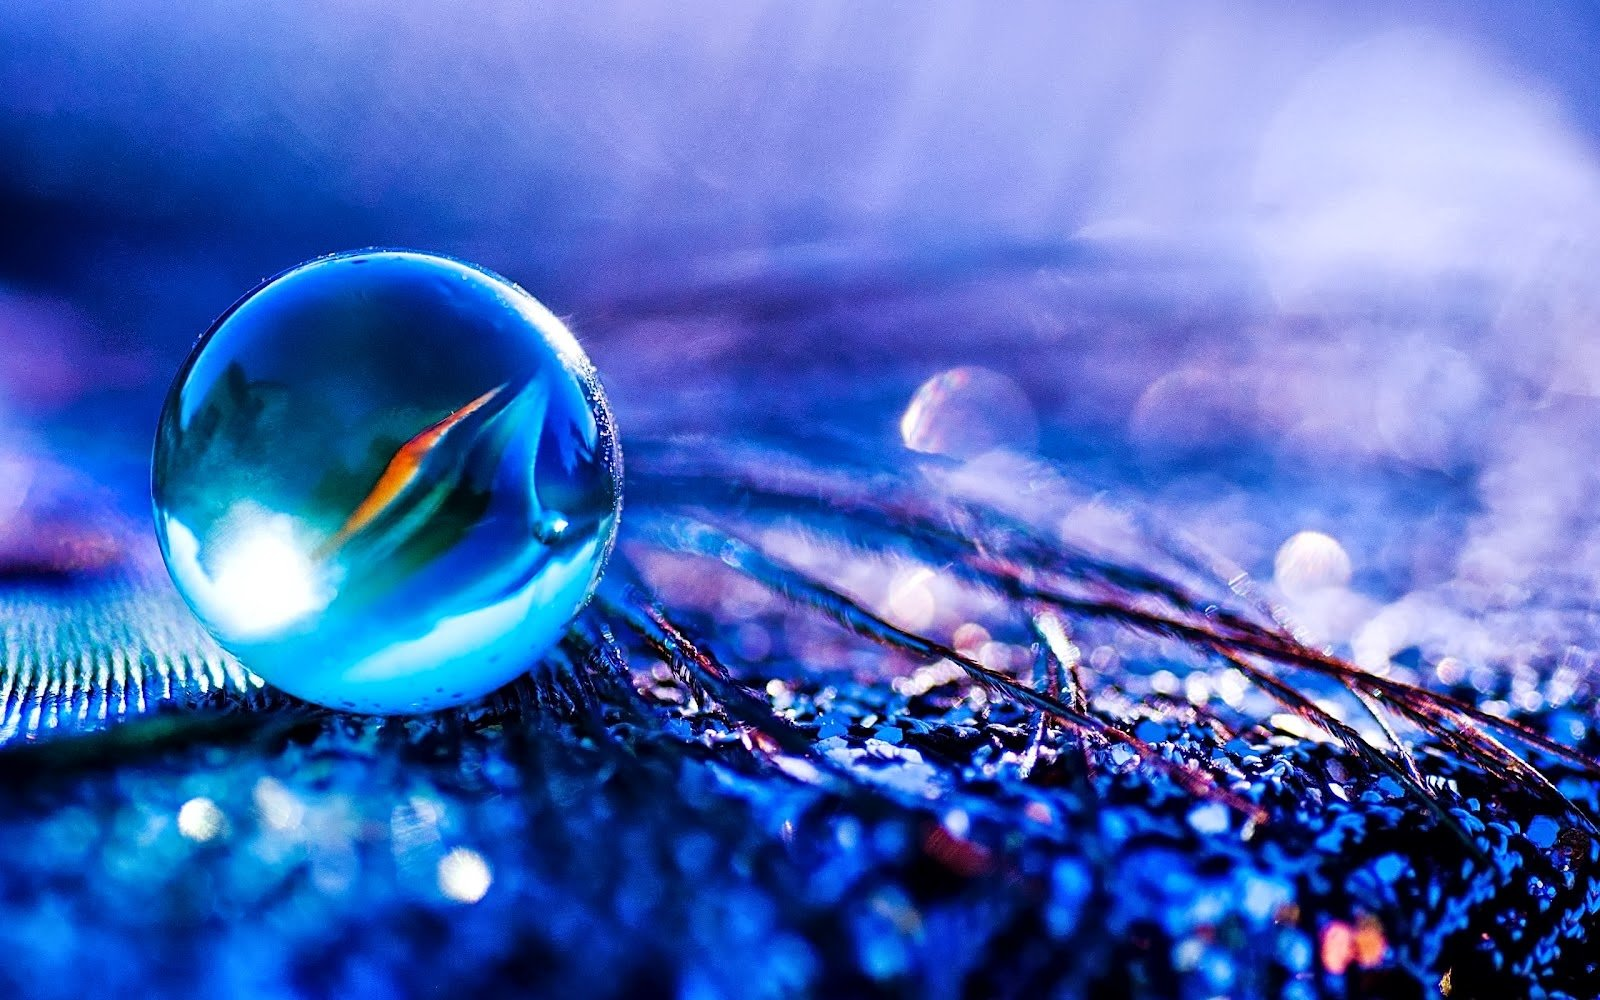 Animated Wallpaper Windows 7 Wallpaper Animated 1600x1000